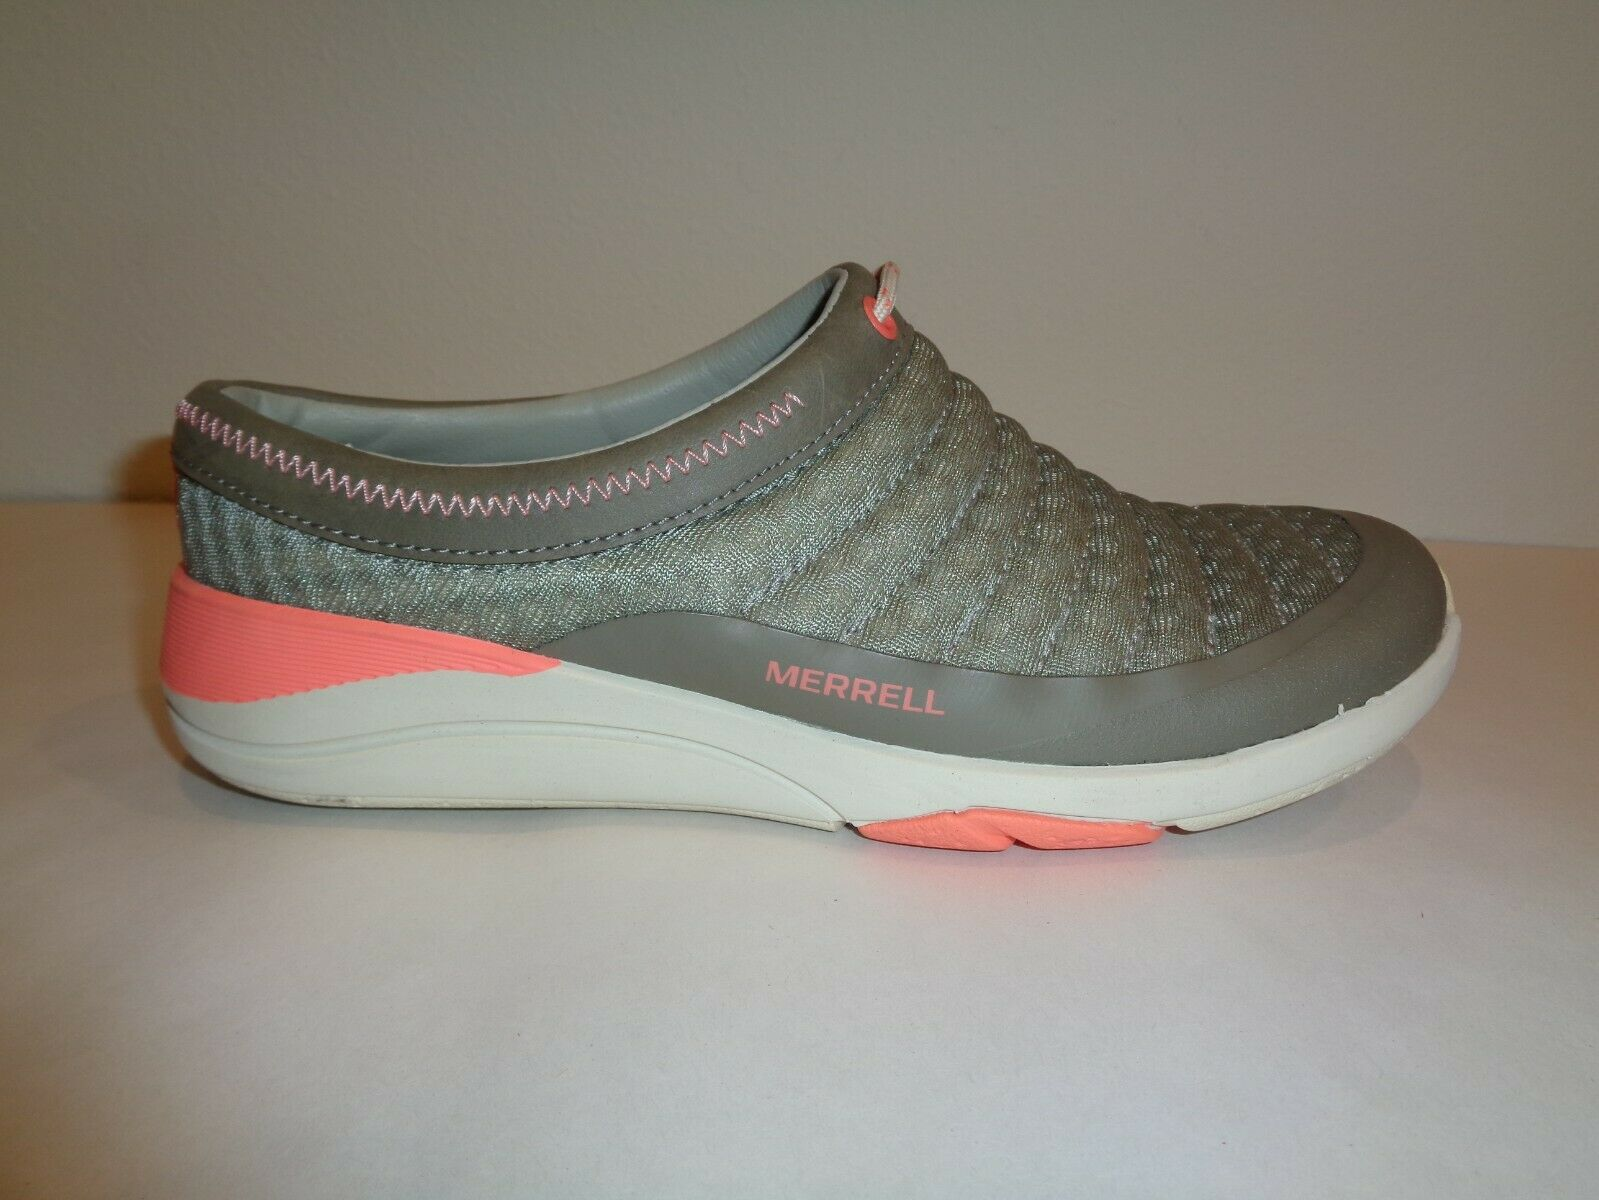 negozio online outlet Merrell Dimensione 6 APPLAUD BREEZE Aluminum Slip On On On Clogs New donna scarpe  outlet online economico